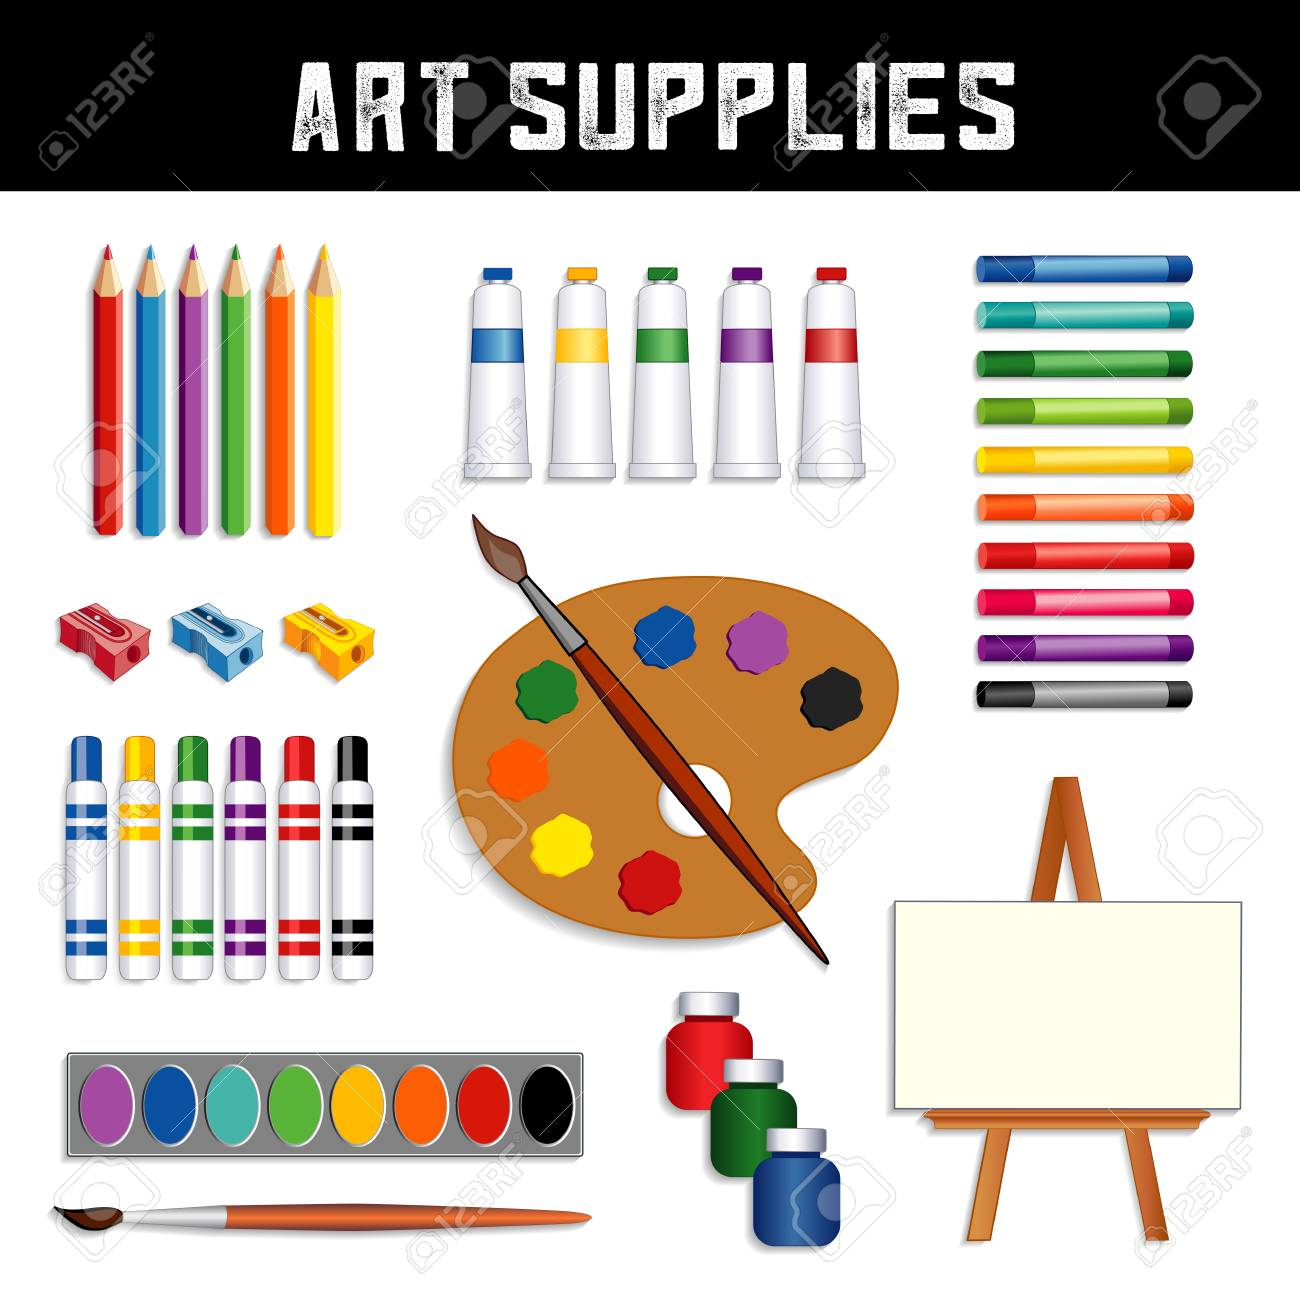 Art supplies collection: colored pencils, sharpeners, tubes of paint, oil pastel crayons, felt tip marker pens, watercolors, brushes, artist palette, jars of paint, easel with blank canvas, isolated on white background. - 100255505